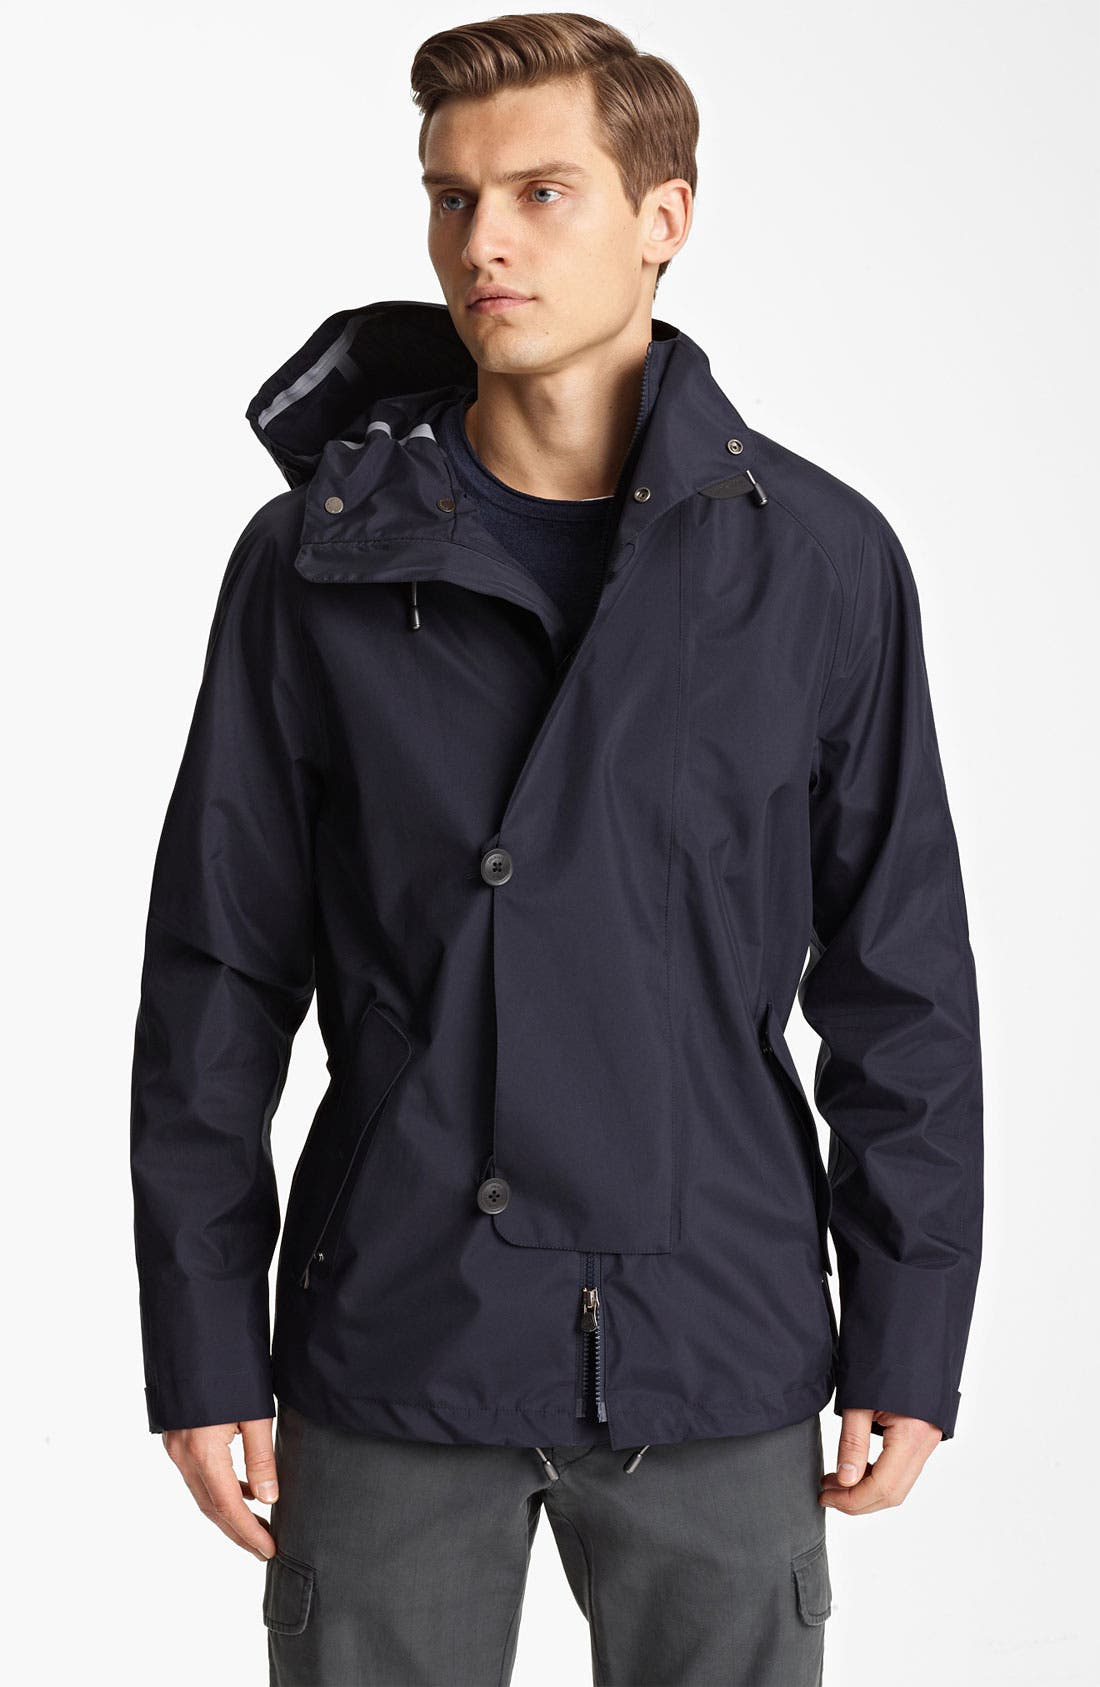 Alternate Image 1 Selected - Zegna Sport 'Marina' Three Season Parka